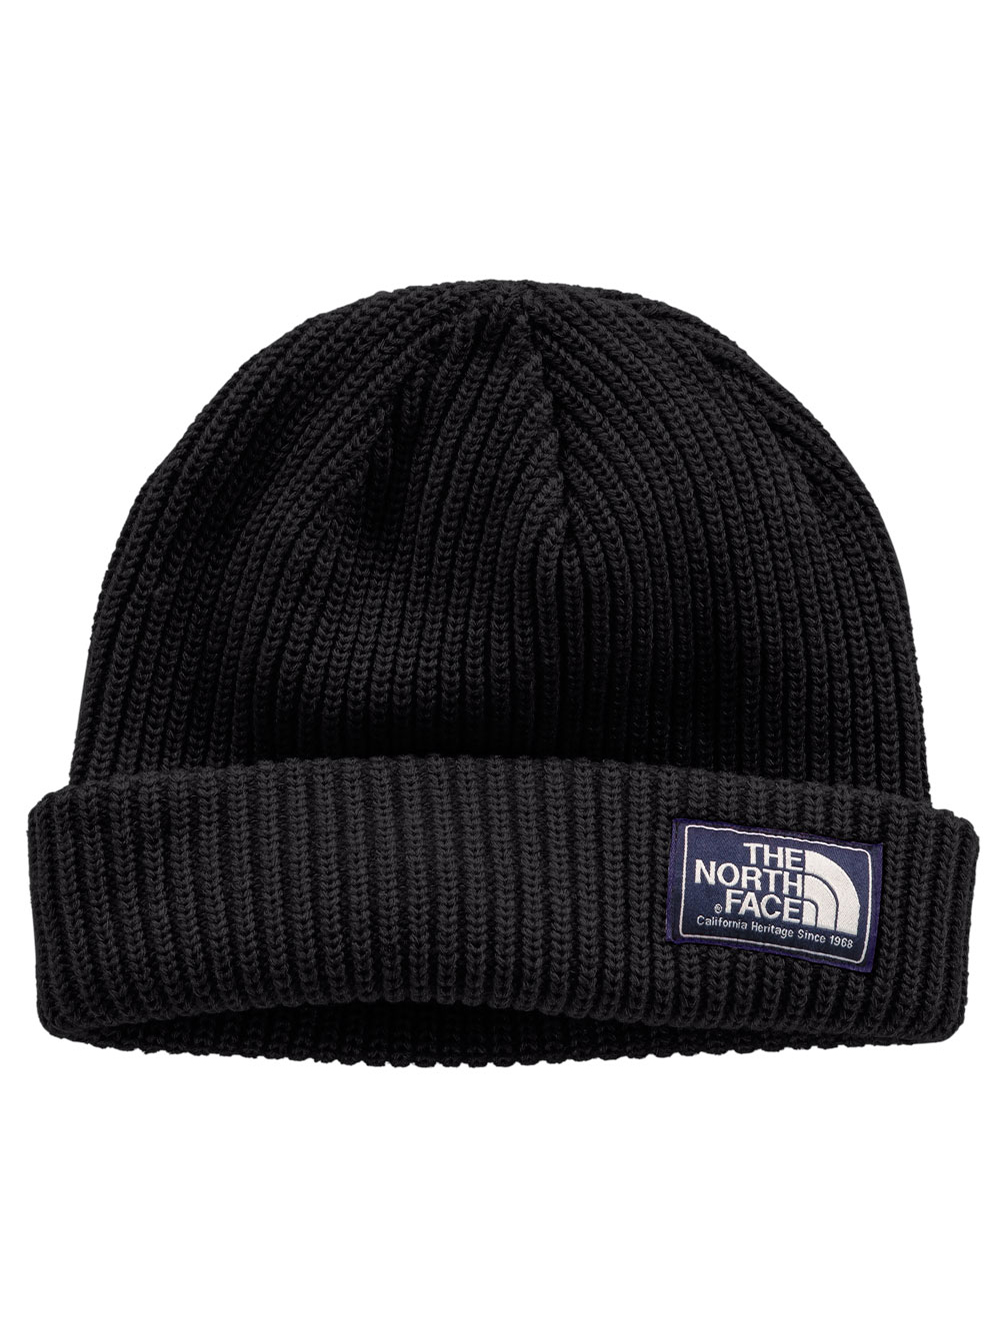 The North Face Salty Dog Beanie (Adult Sizes)